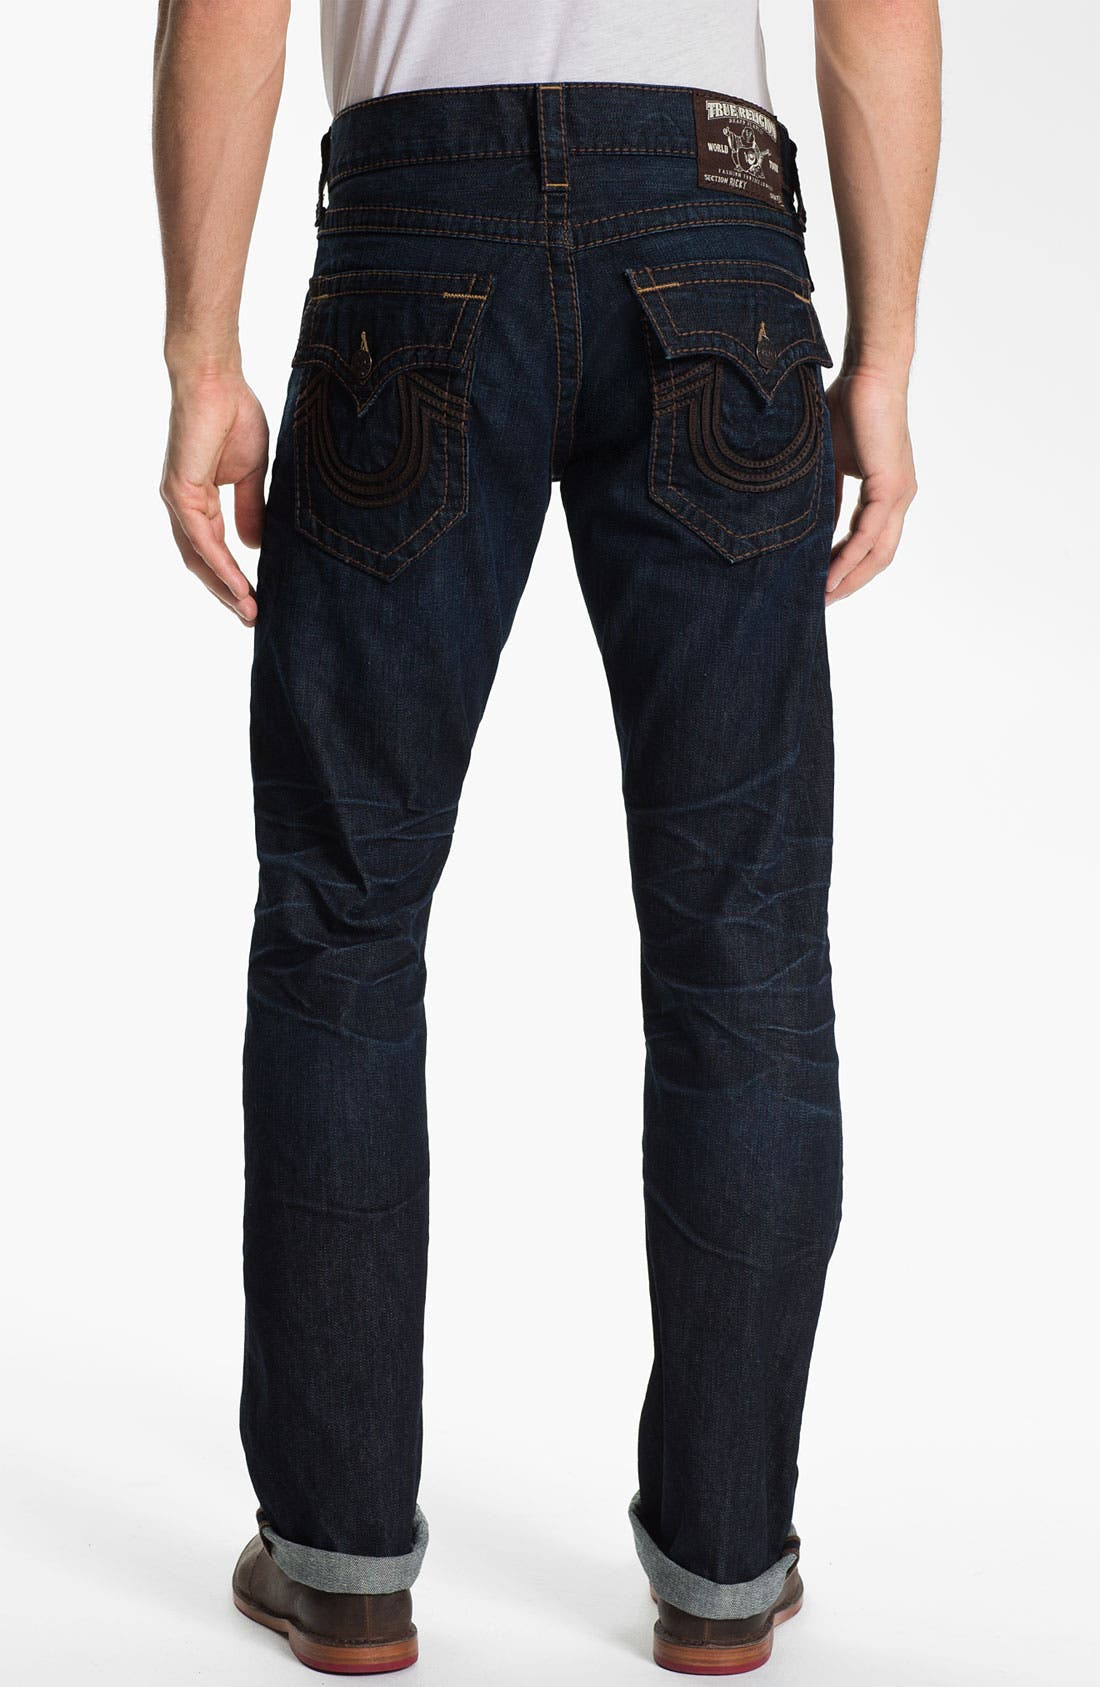 Main Image - True Religion Brand Jeans 'Ricky' Straight Leg Jeans (Overland) (Online Exclusive)